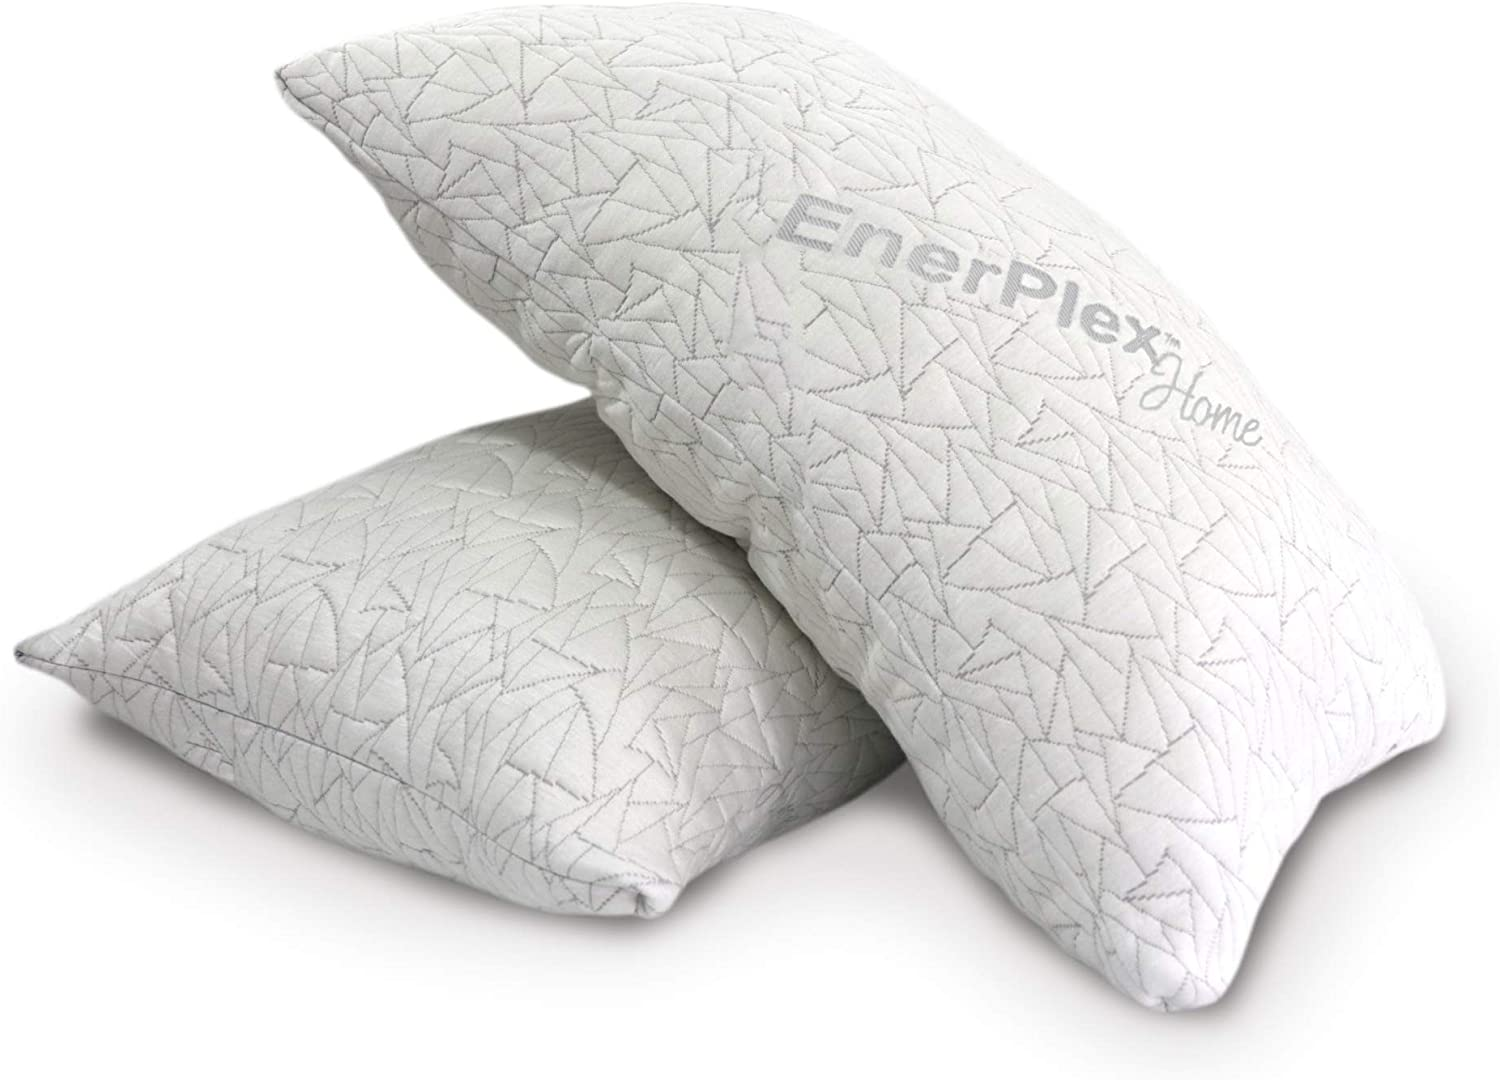 EnerPlex Upgraded Pillow, Adjustable Shredded Memory Foam Pillow, Luxury Pillow - High End Quality, Machine Washable, Removable Bamboo Cover, Queen Size (2 Pack)